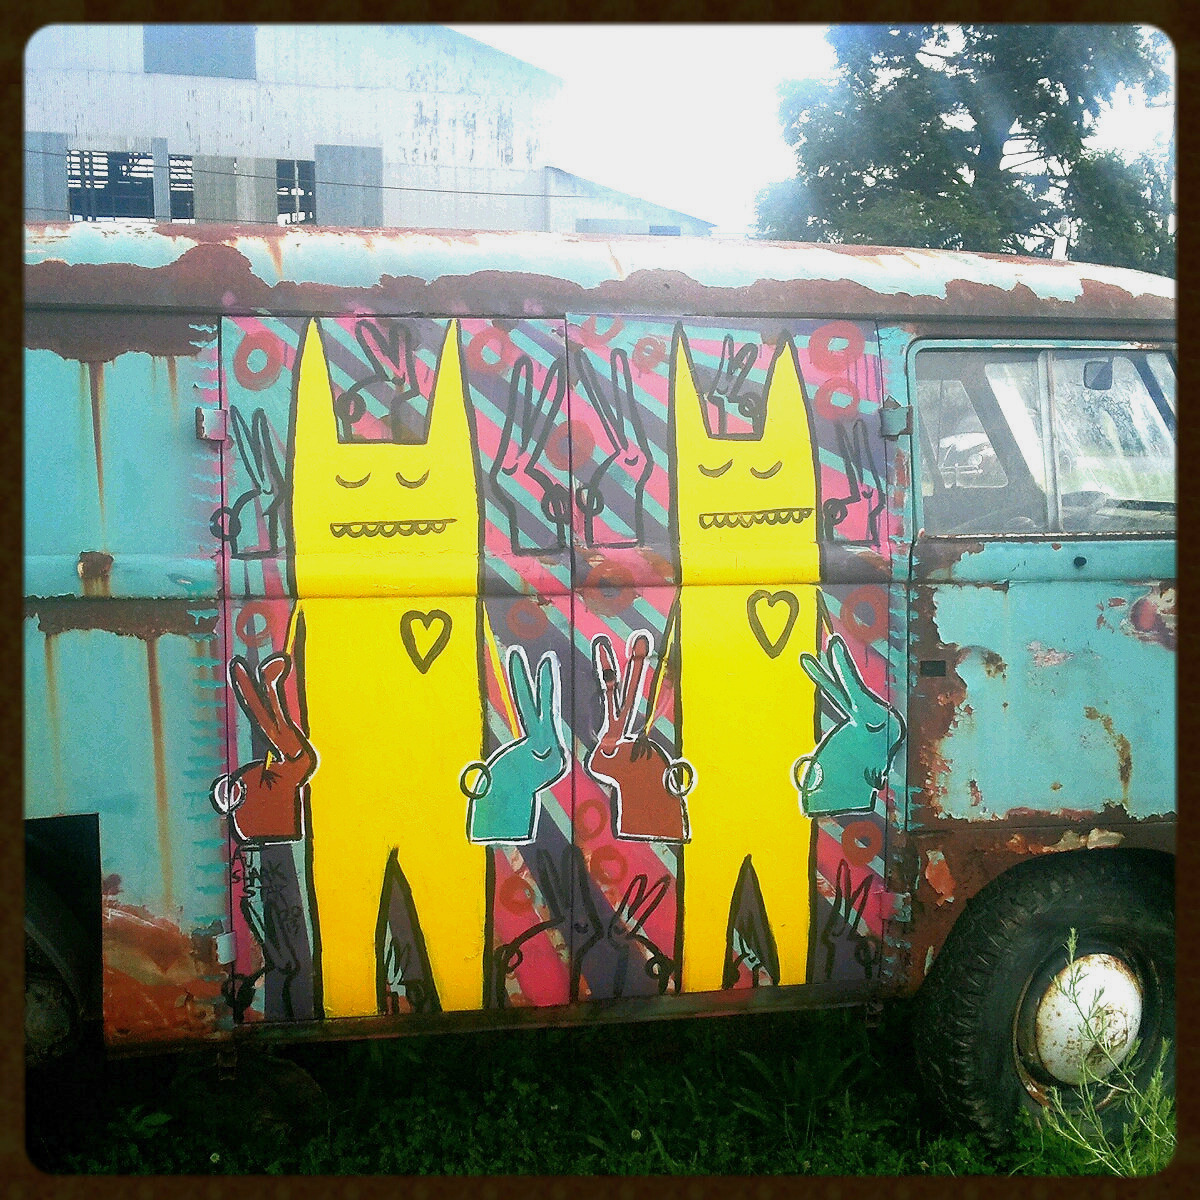 VW Bus, Roanoake Virginia